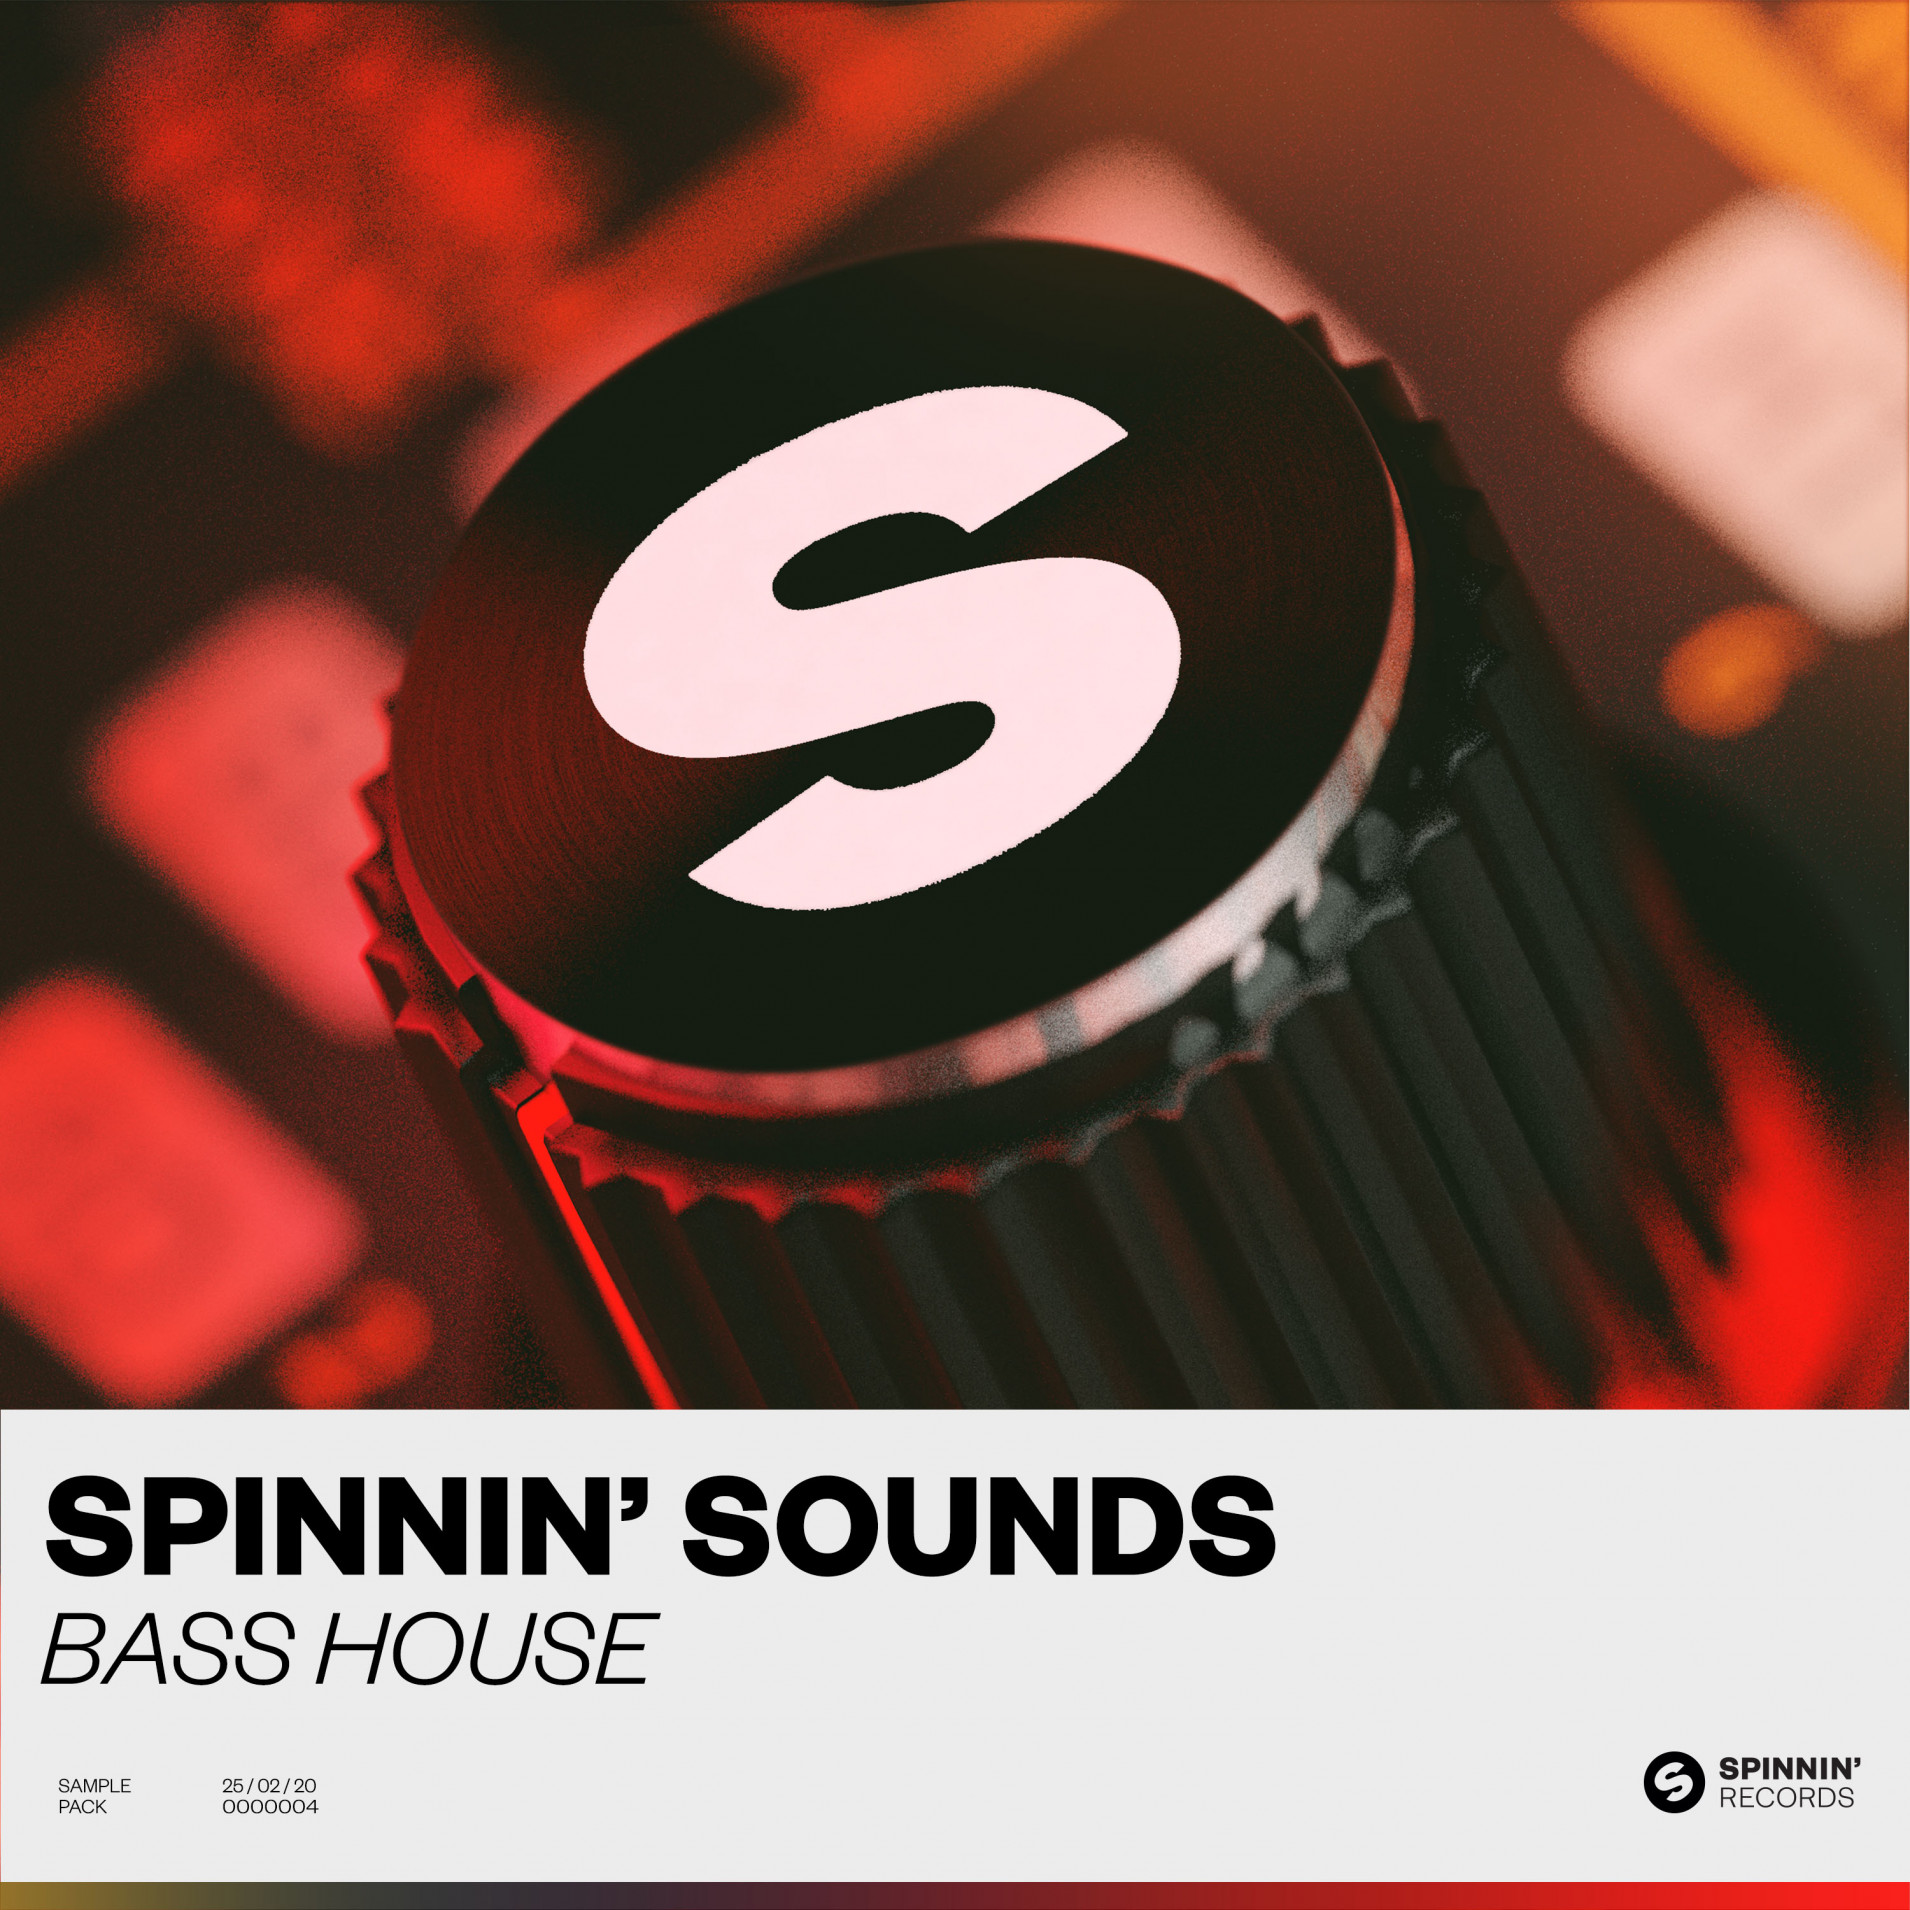 Spinnin' Records brings new sample pack: Bass House